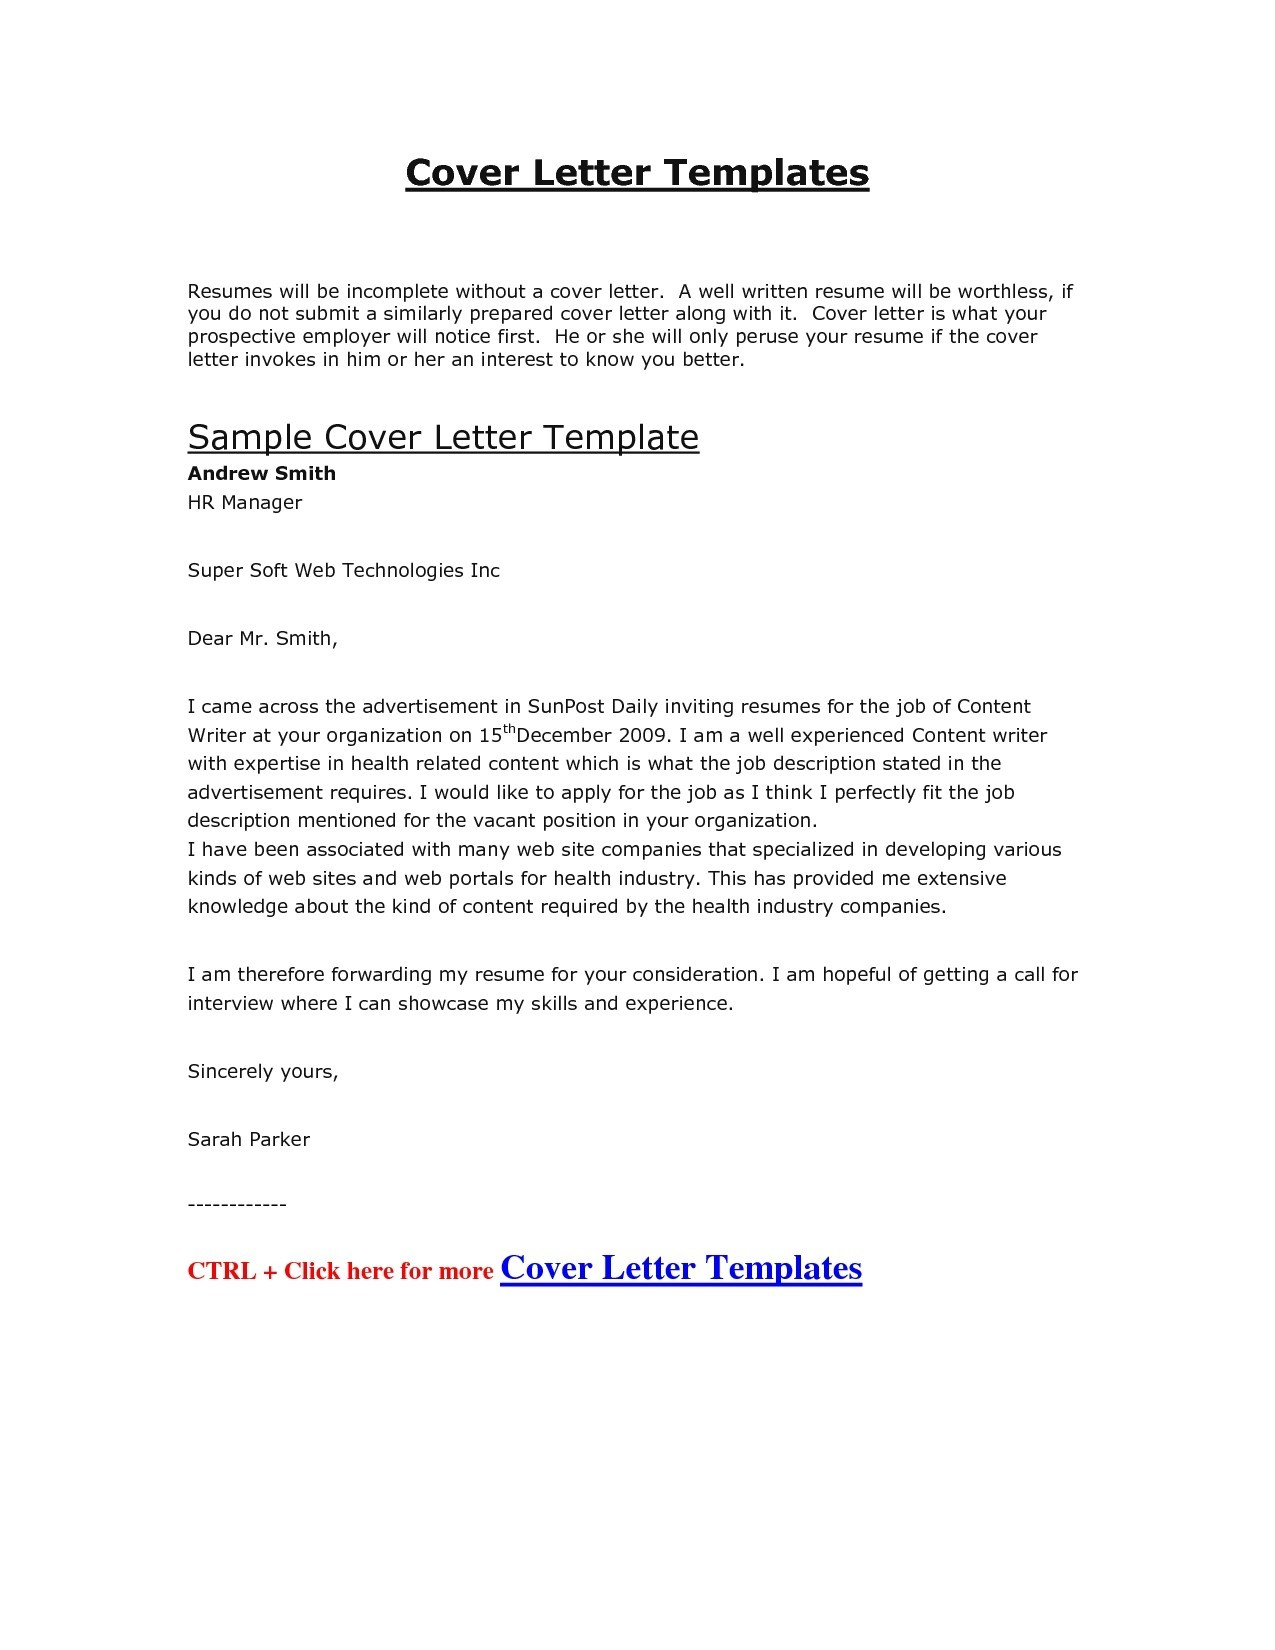 Application Cover Letter Template - Job Application Letter format Template Copy Cover Letter Template Hr